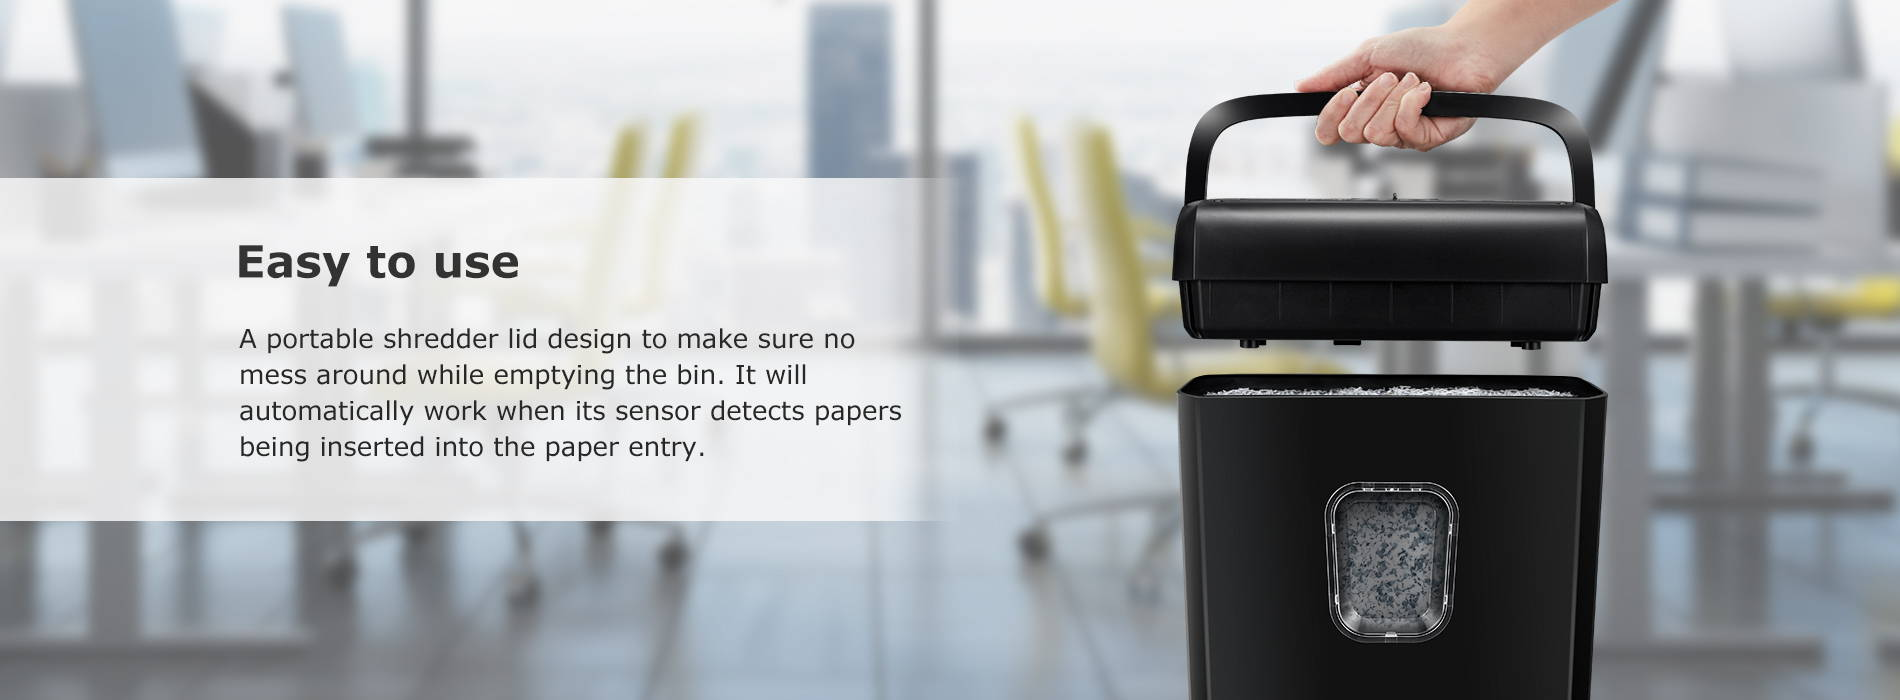 Easy to use A portable shredder lid design to make sure no mess around while emptying the bin. It will automatically work when its sensor detects papers being inserted into the paper entry.